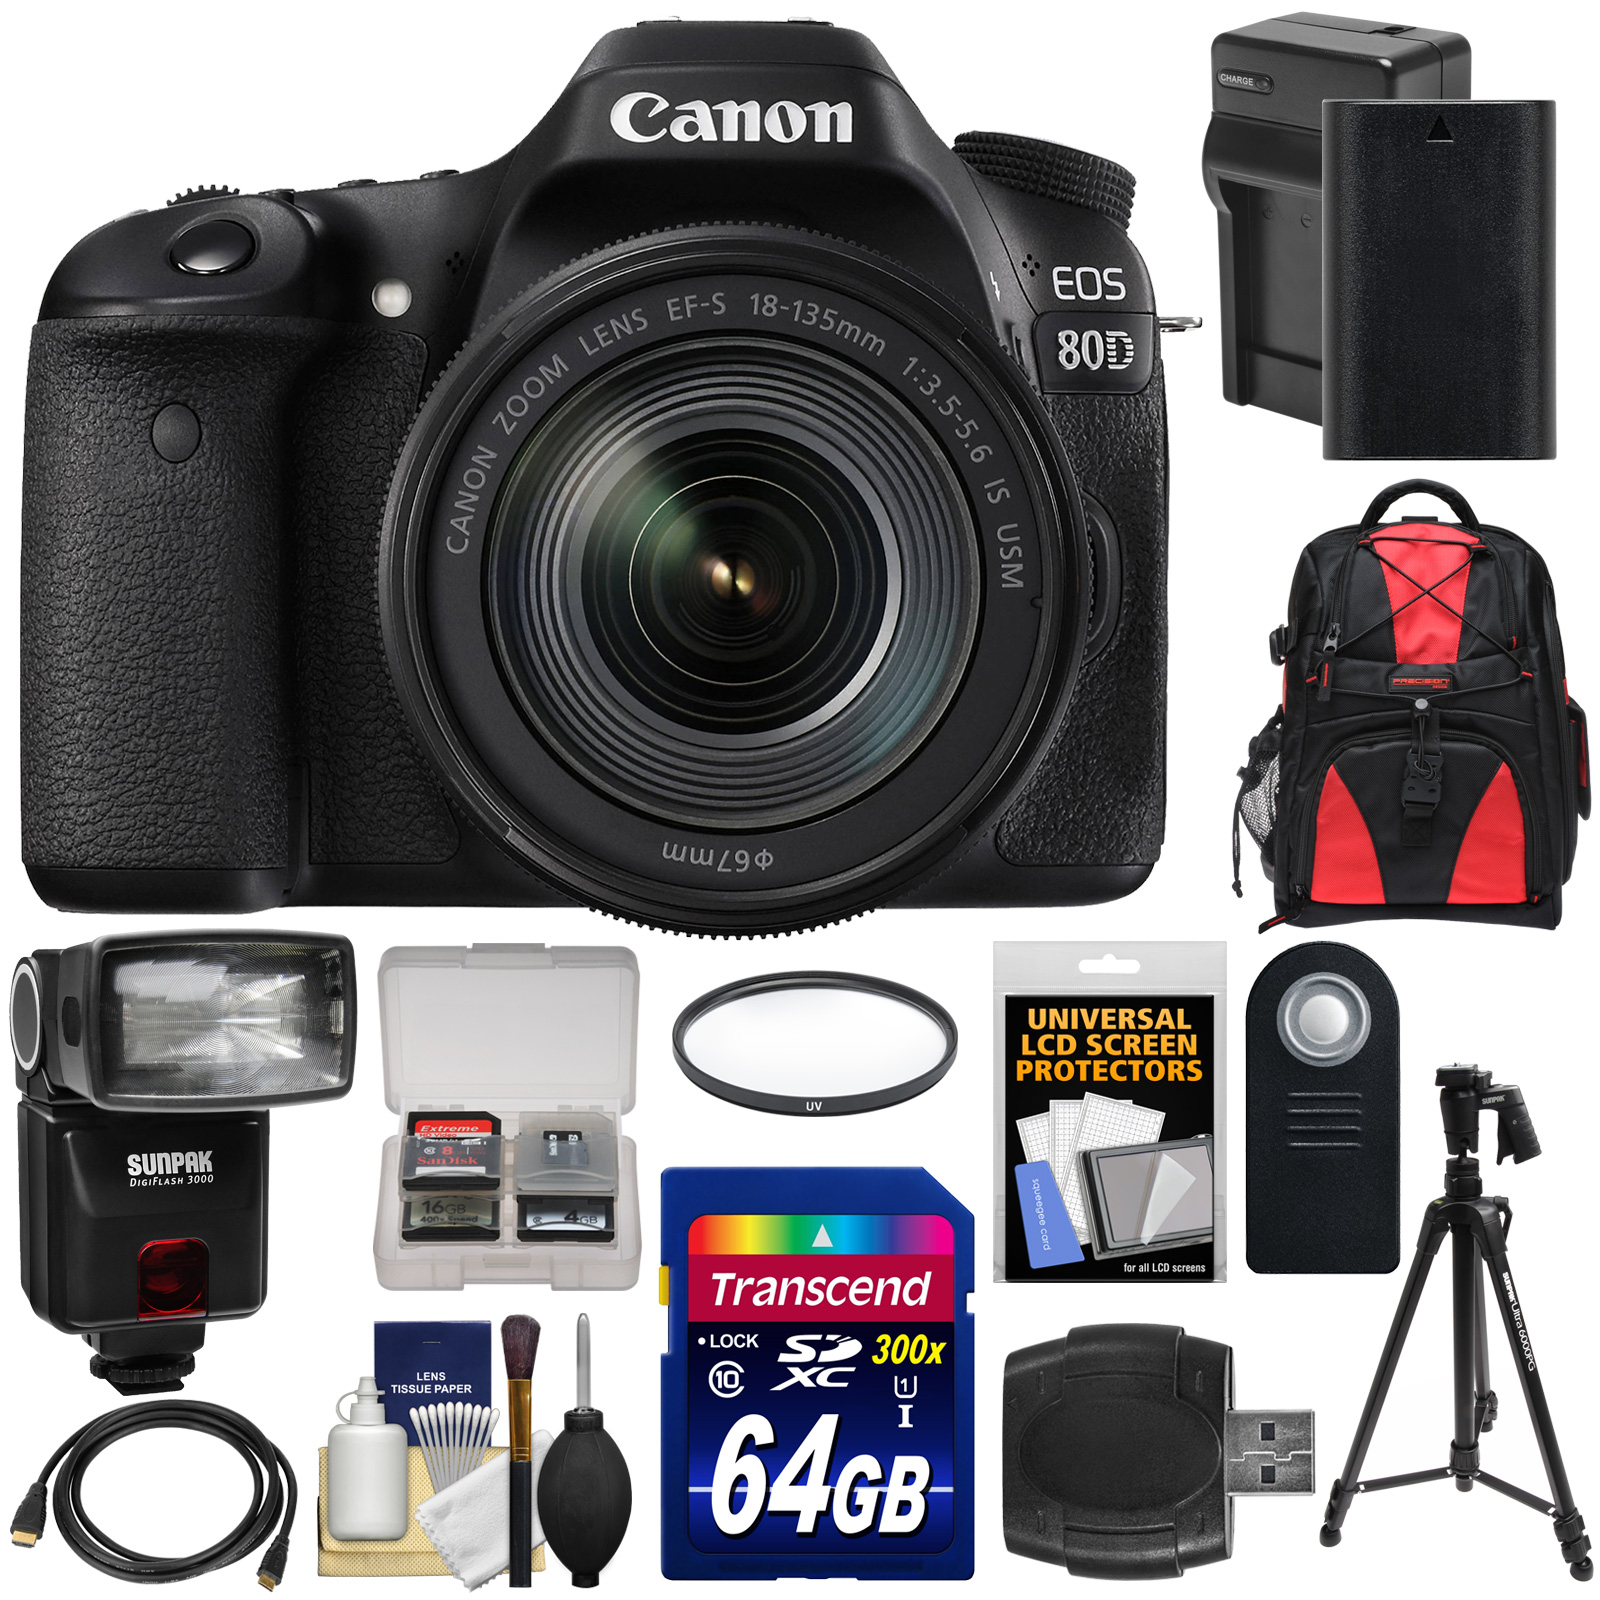 Canon EOS 80D Wi-Fi Digital SLR Camera & EF-S 18-135mm IS USM Lens with 64GB Card + Battery & Charger + Backpack +... by Canon